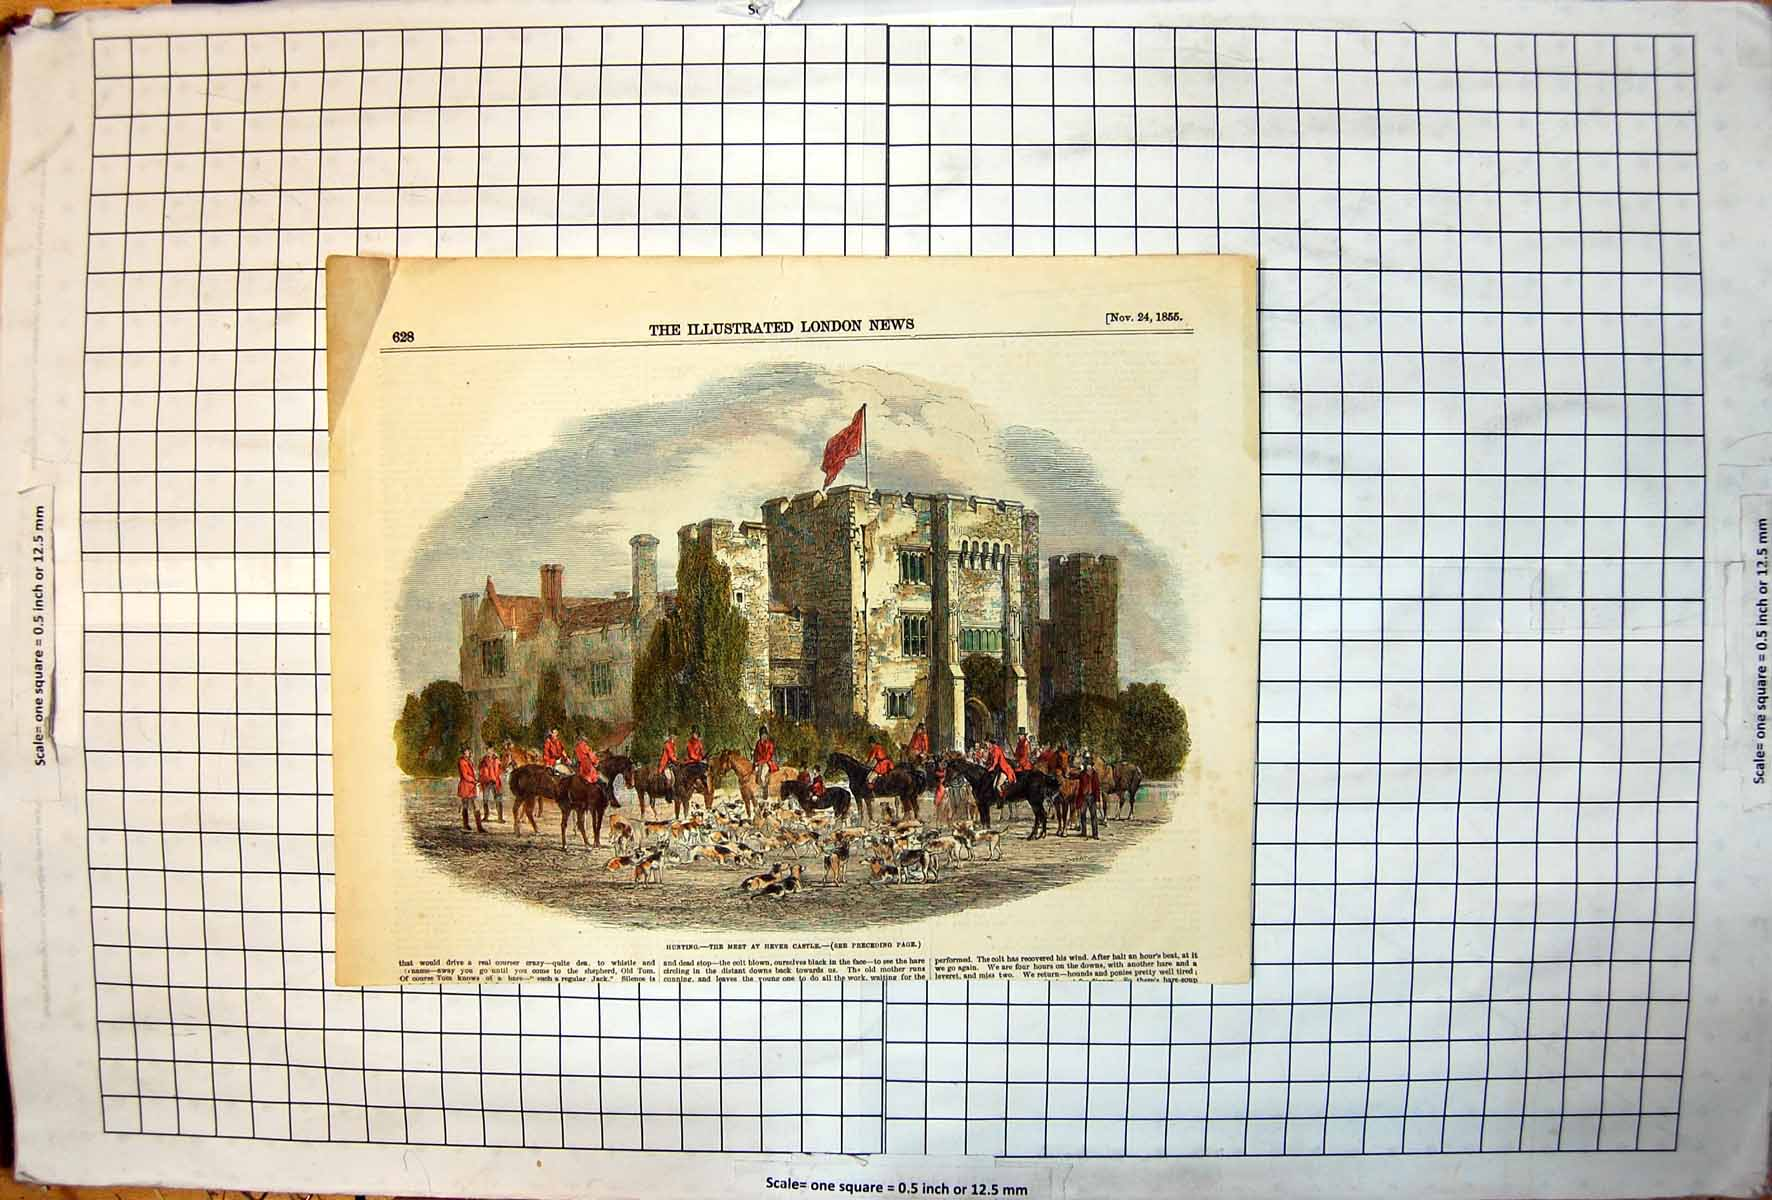 Antique-Old-Print-Hunting-Meet-Hever-Castle-Hounds-Horses-Riders-Flag-1855-19th